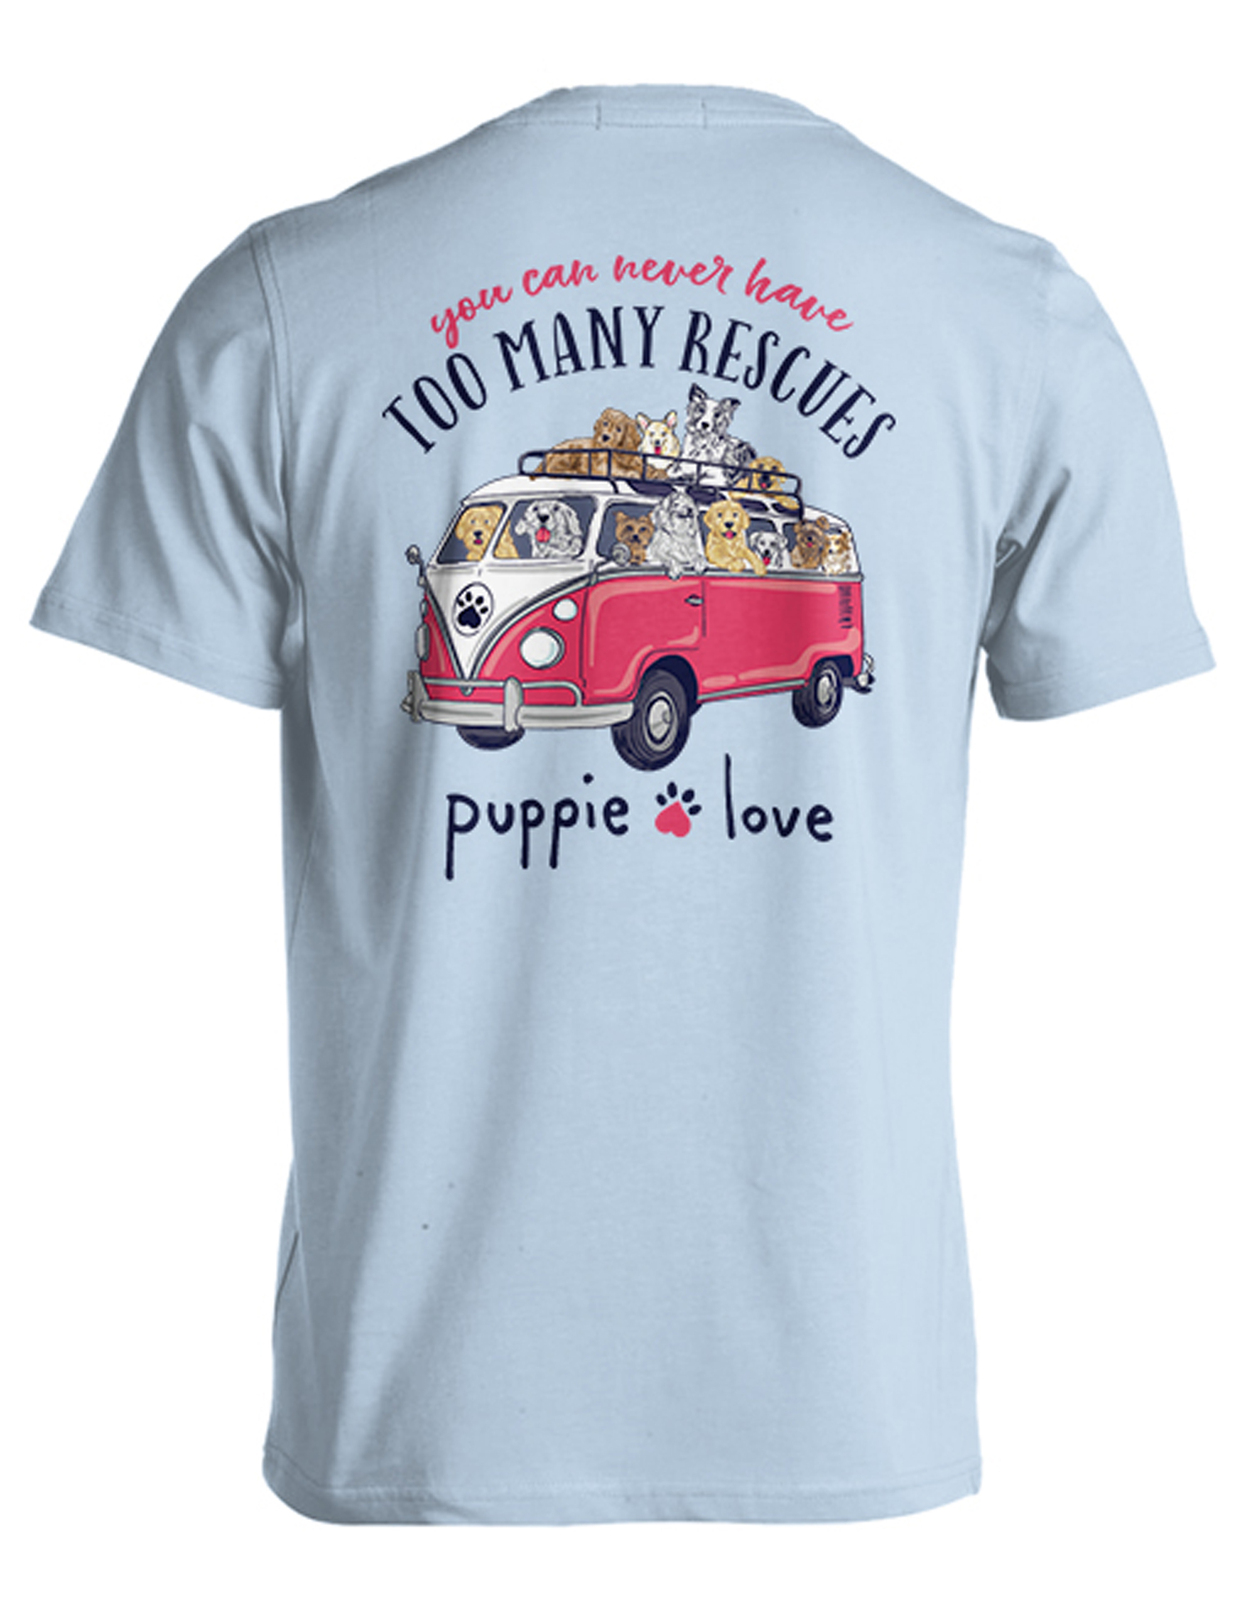 Rescue bus pup ss 316 ltb 1